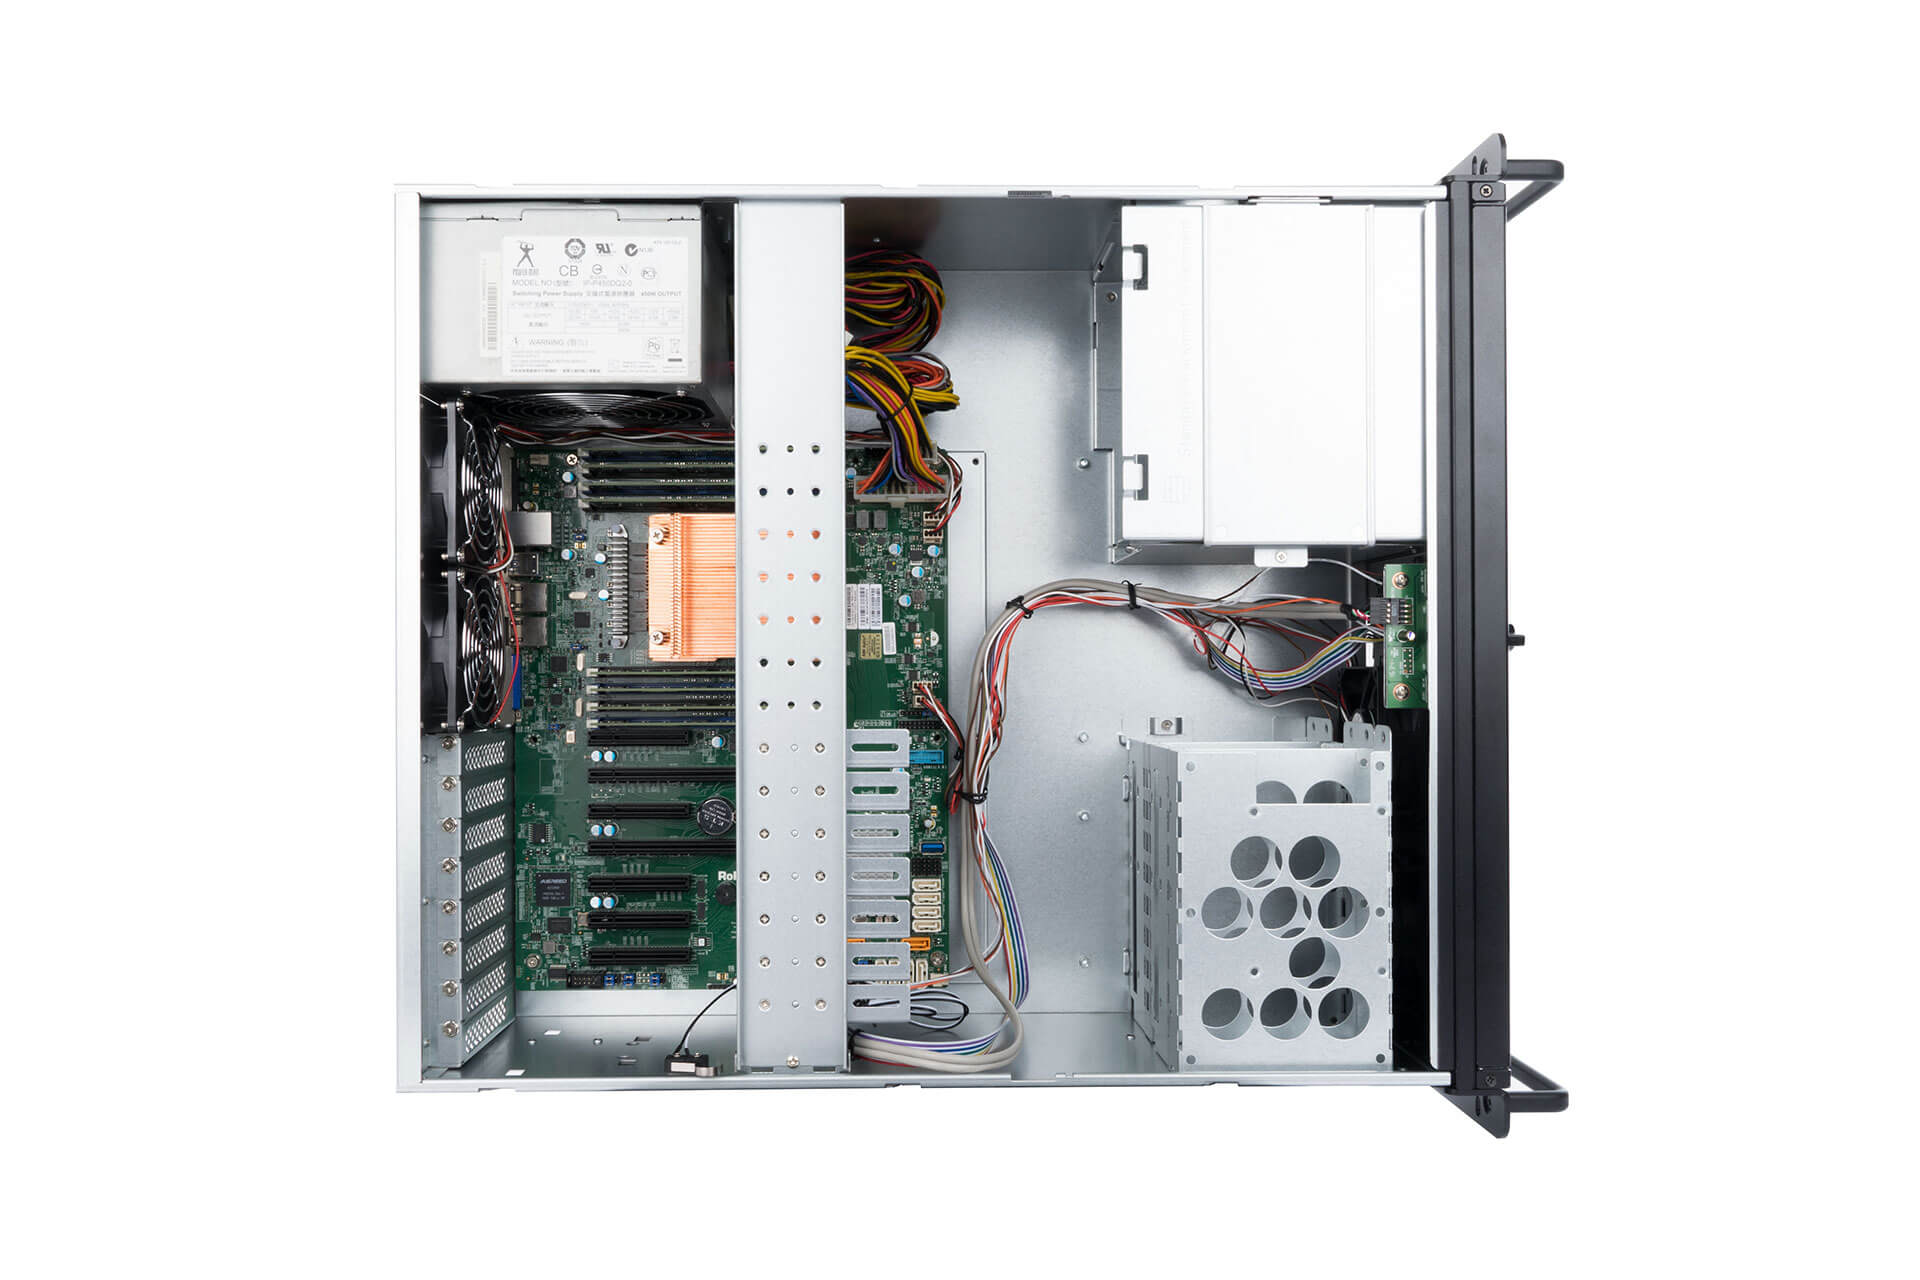 IW-R400-01N - server system assembly